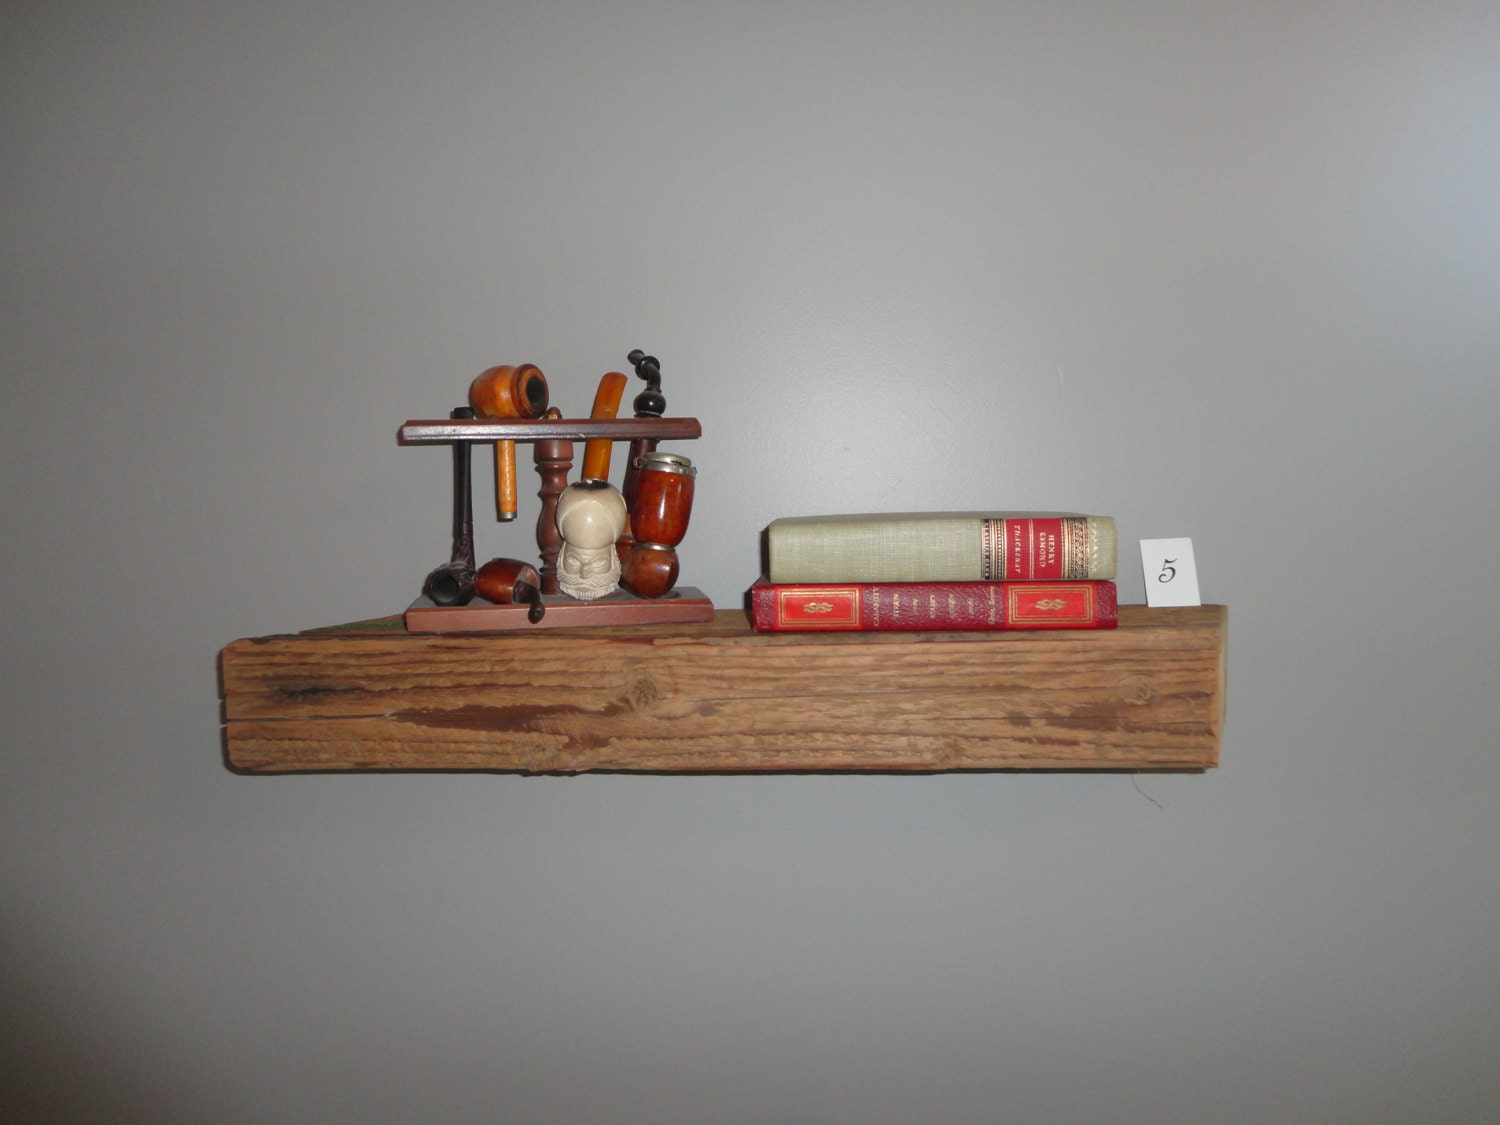 Superb img of Over 100 YEAR OLD Barwood Shelves Barn Wood by FHABfurnishings with #9C322F color and 1500x1125 pixels